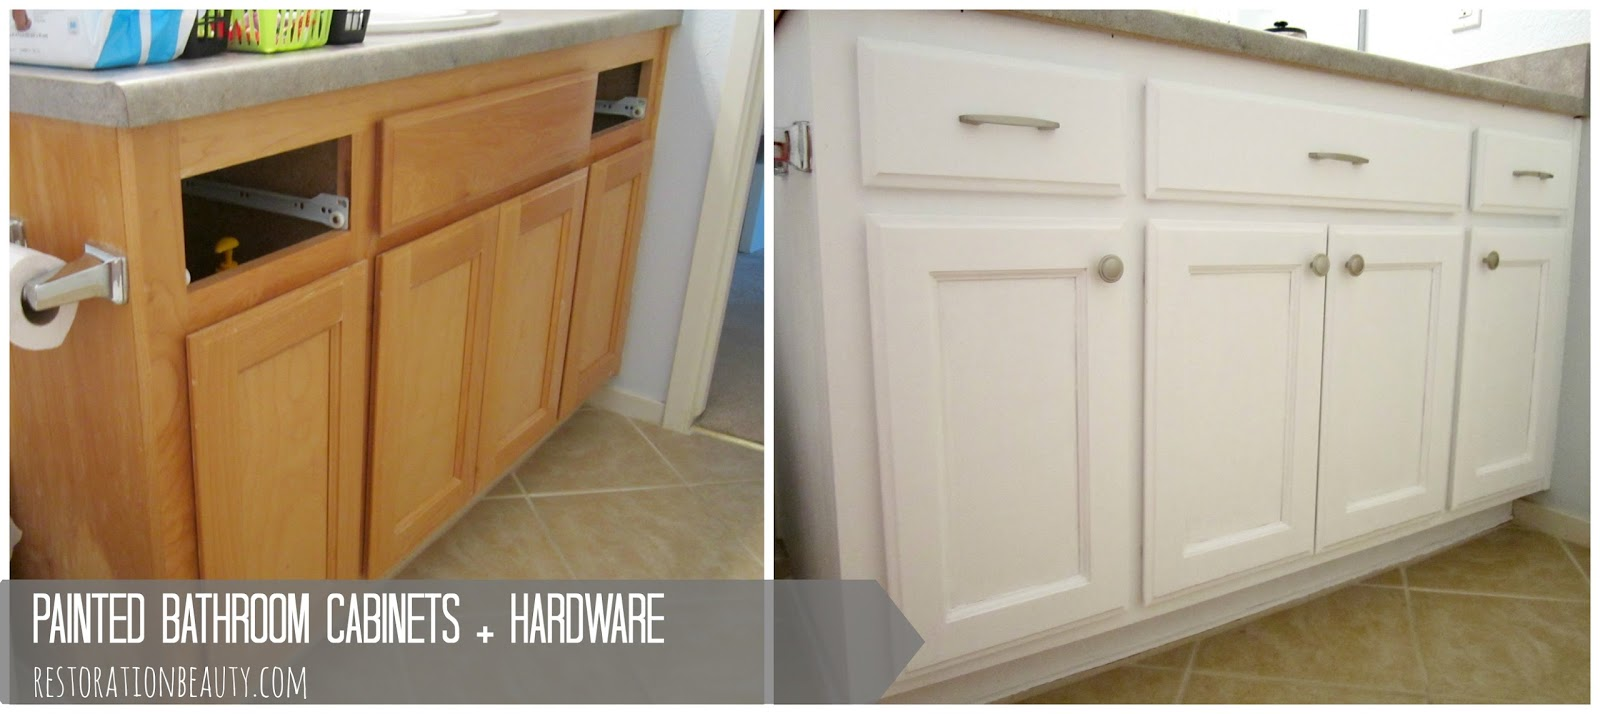 How To Repaint Bathroom Cabinets White restoration beauty: painted bathroom cabinets + hardware